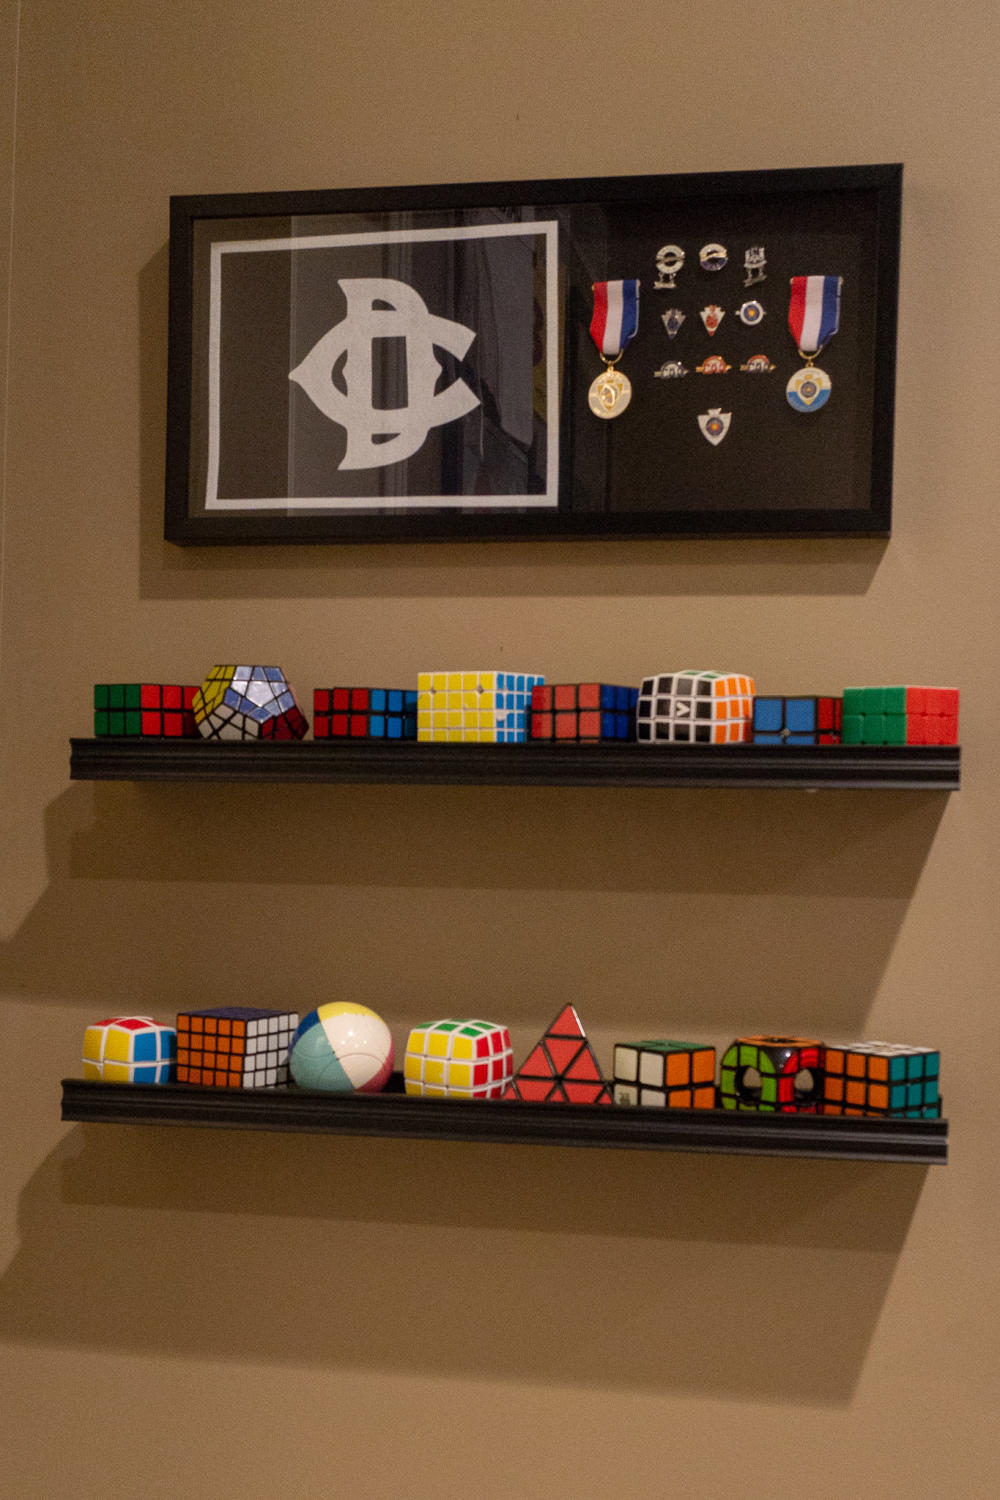 American Archer pins over various Rubix Cubes